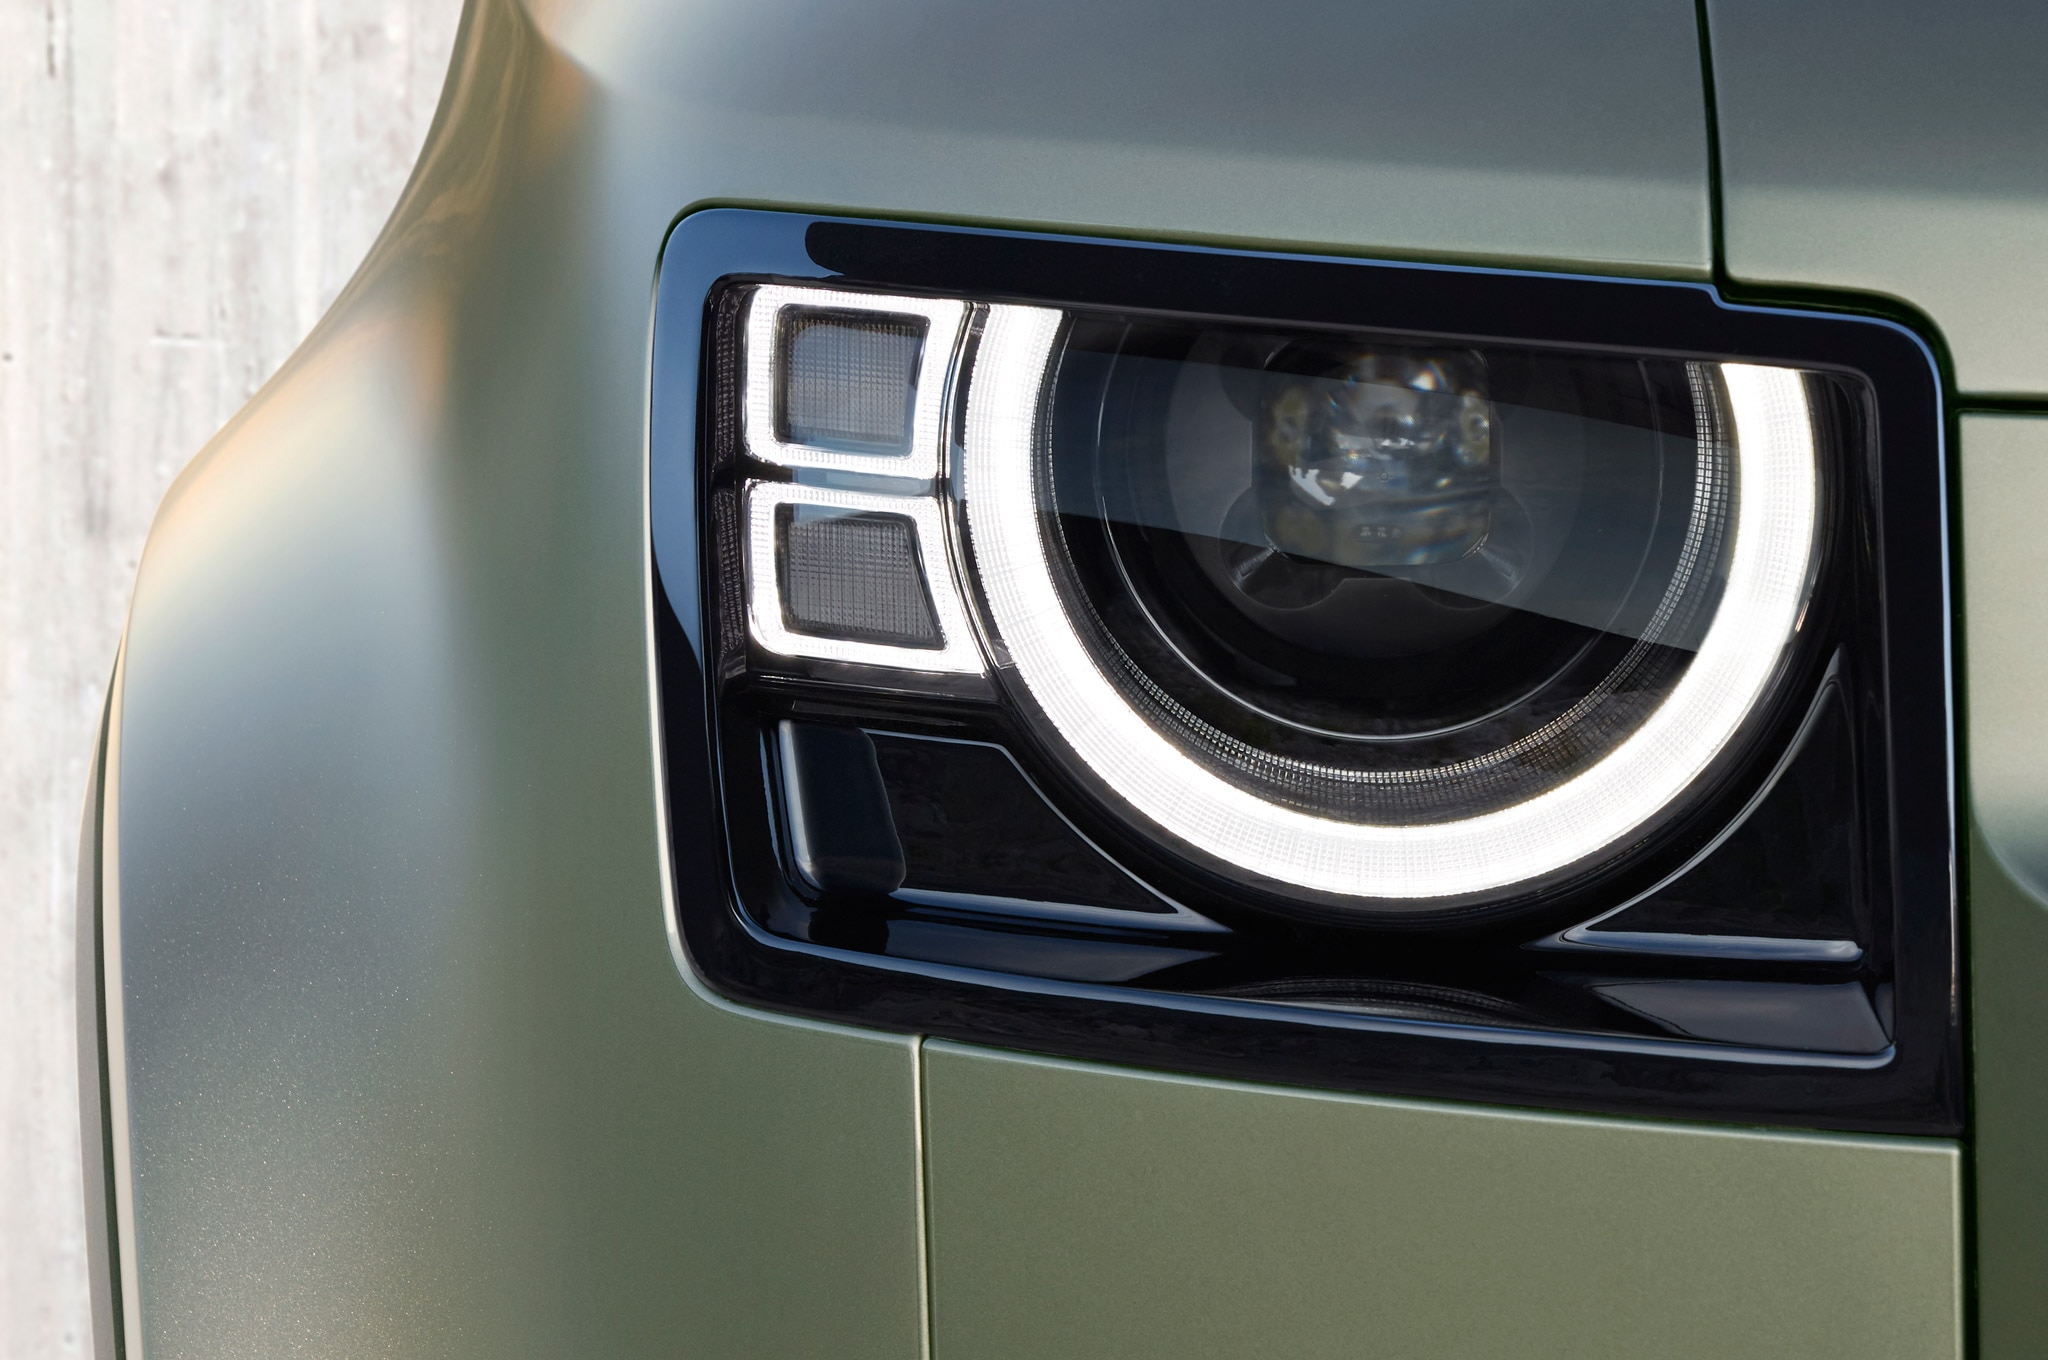 2020 land rover defender exterior headlamp